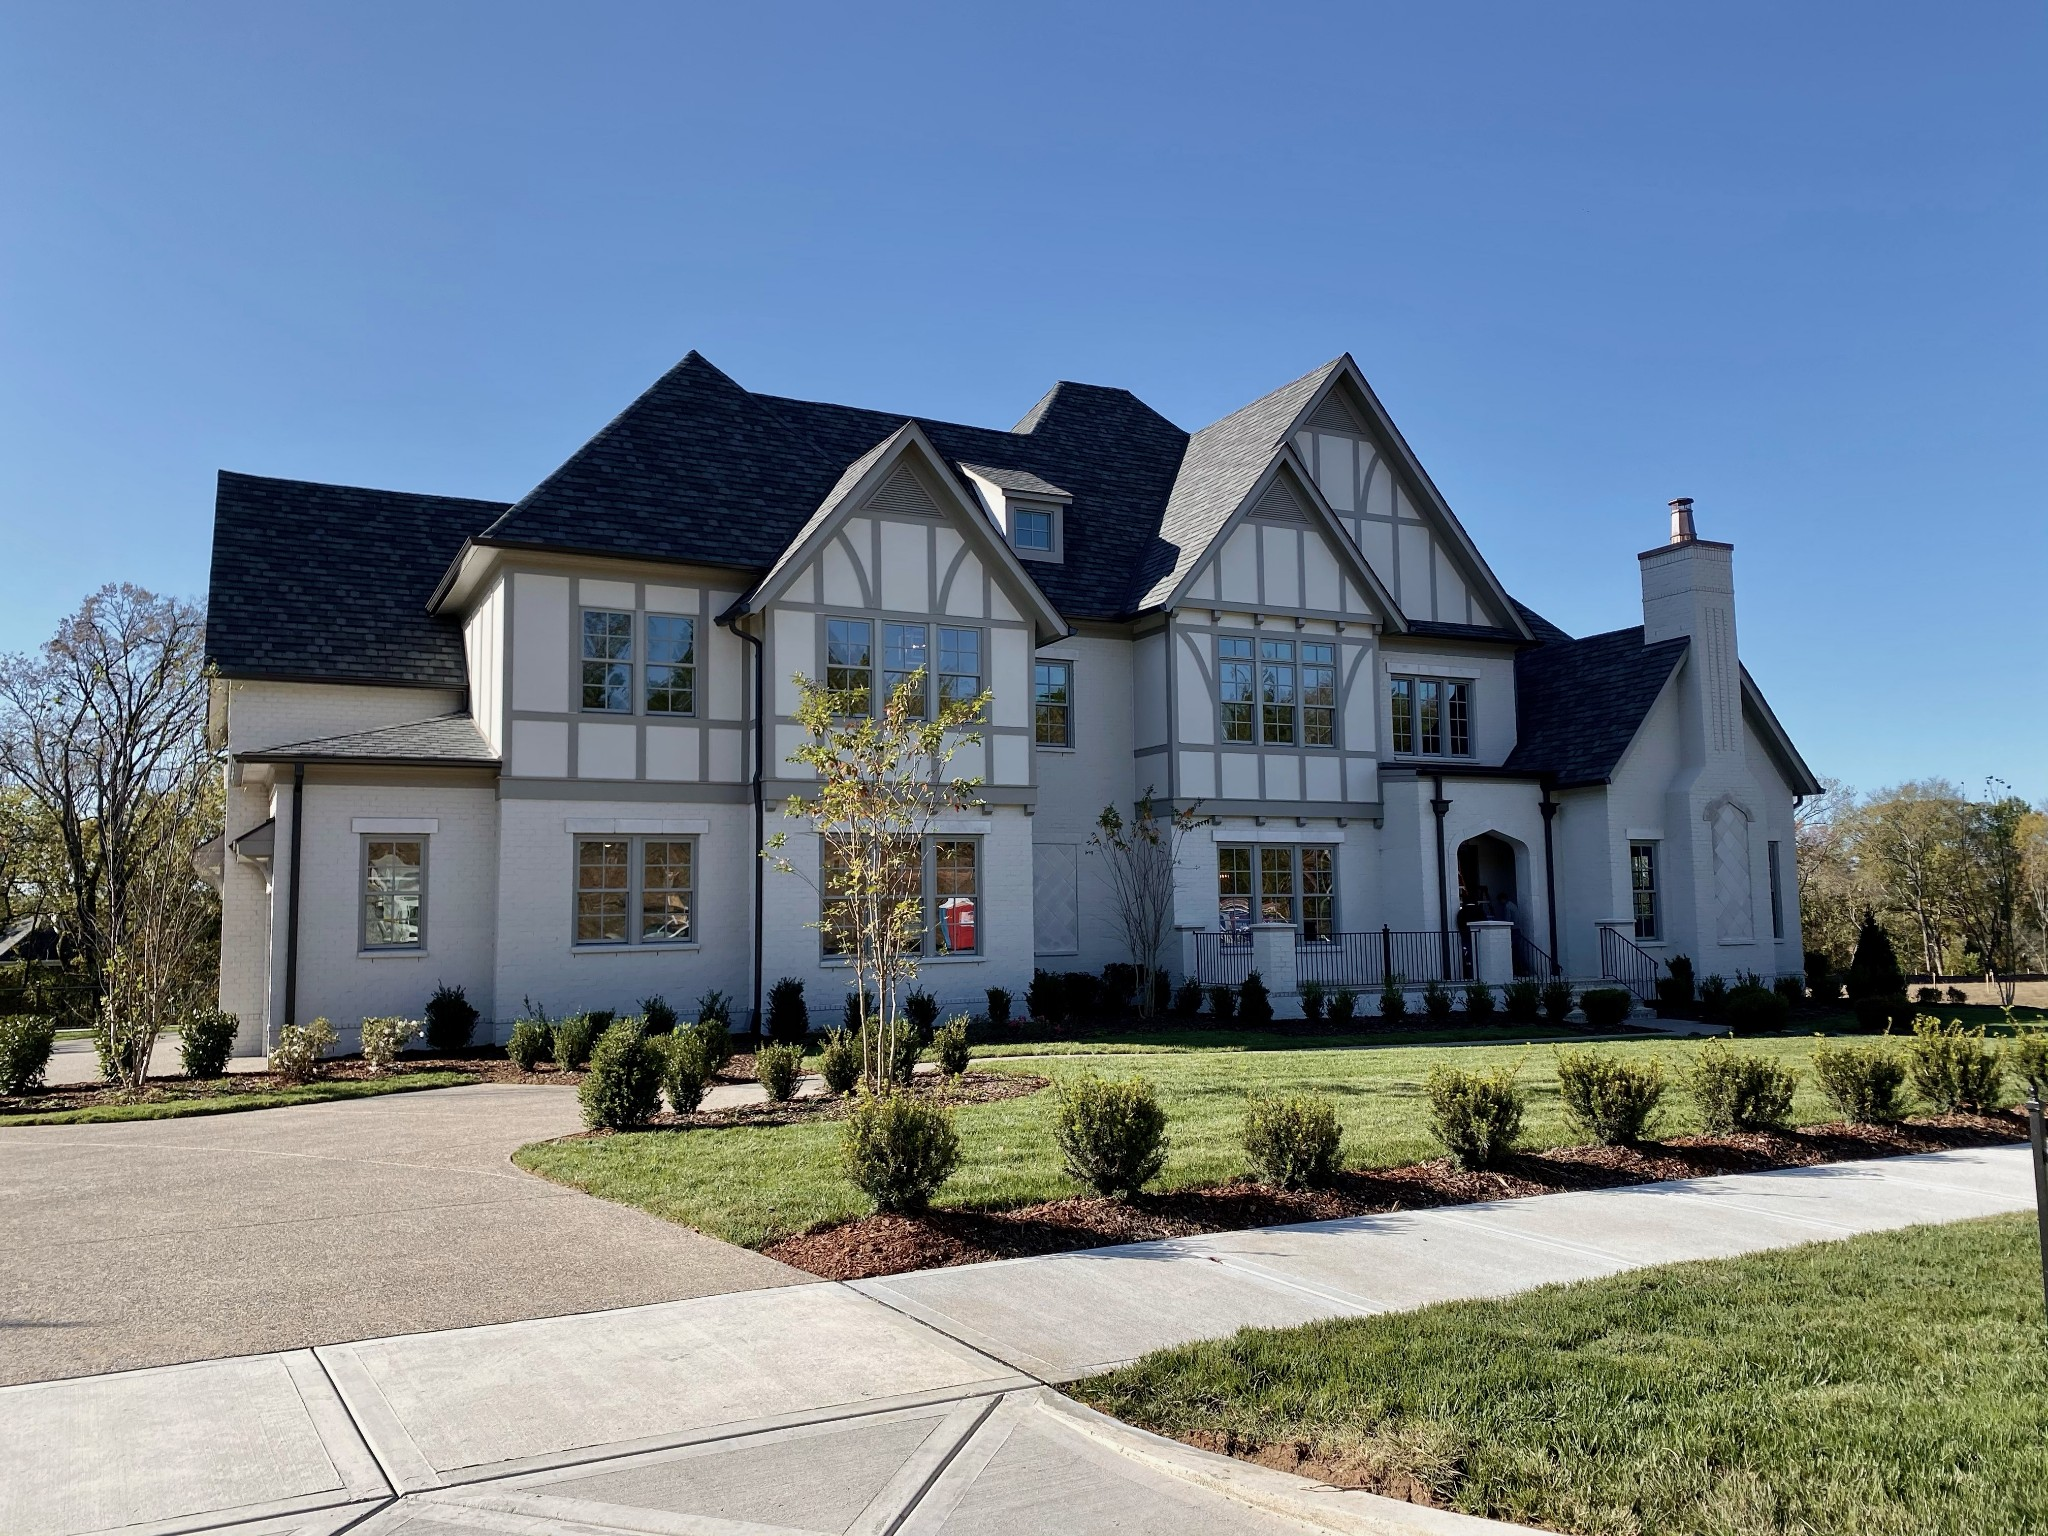 Custom Beauty in Witherspoon by Ford Classic Homes.  Classic English Architecture defines this fabulous home w/6 Bdrms/6 Full/3 Half Baths! Master & Guest Suites on main level. Elevator to all 3 floors! Beautiful porches overlook a treed backyard. 4 car garage. Large Home Center/Laundry Room/Mudroom Drop Zone/2 staircases/Wine Room/Exercise Room/Flex Rooms! You name it-this home has it! Hurry and select interior colors!